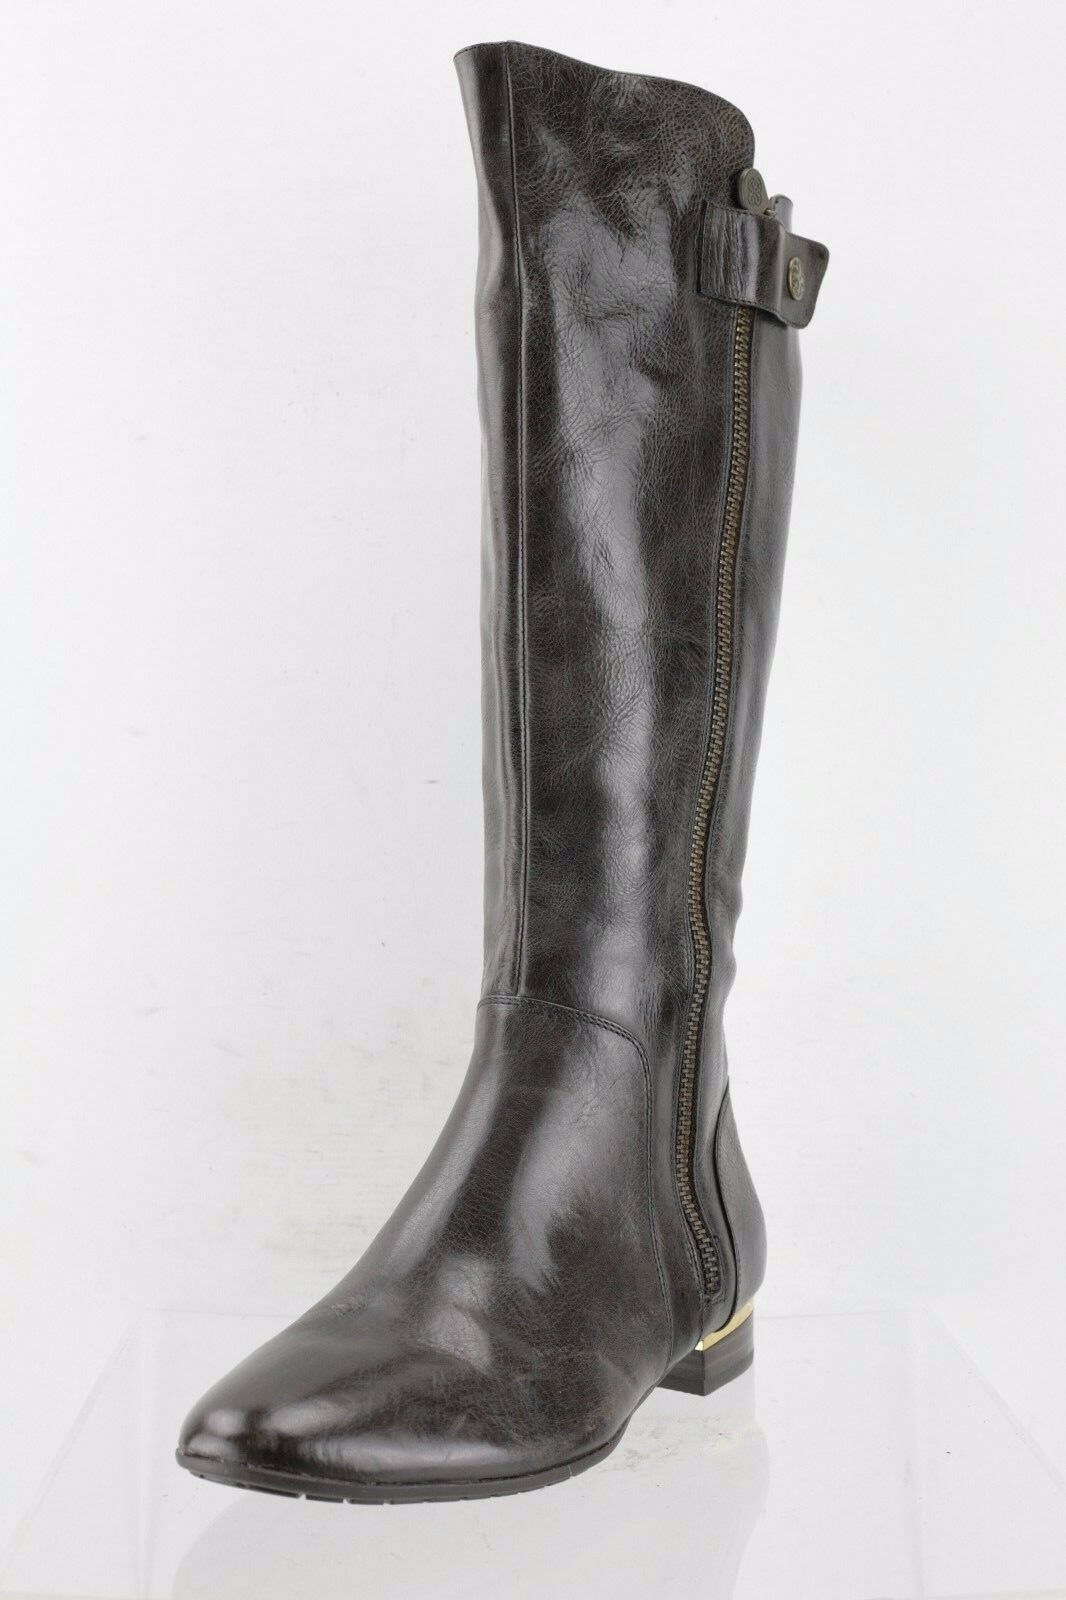 Isola Aali Dark Brown Leather Knee High Boots Women's Shoes Size 9.5 M NEW